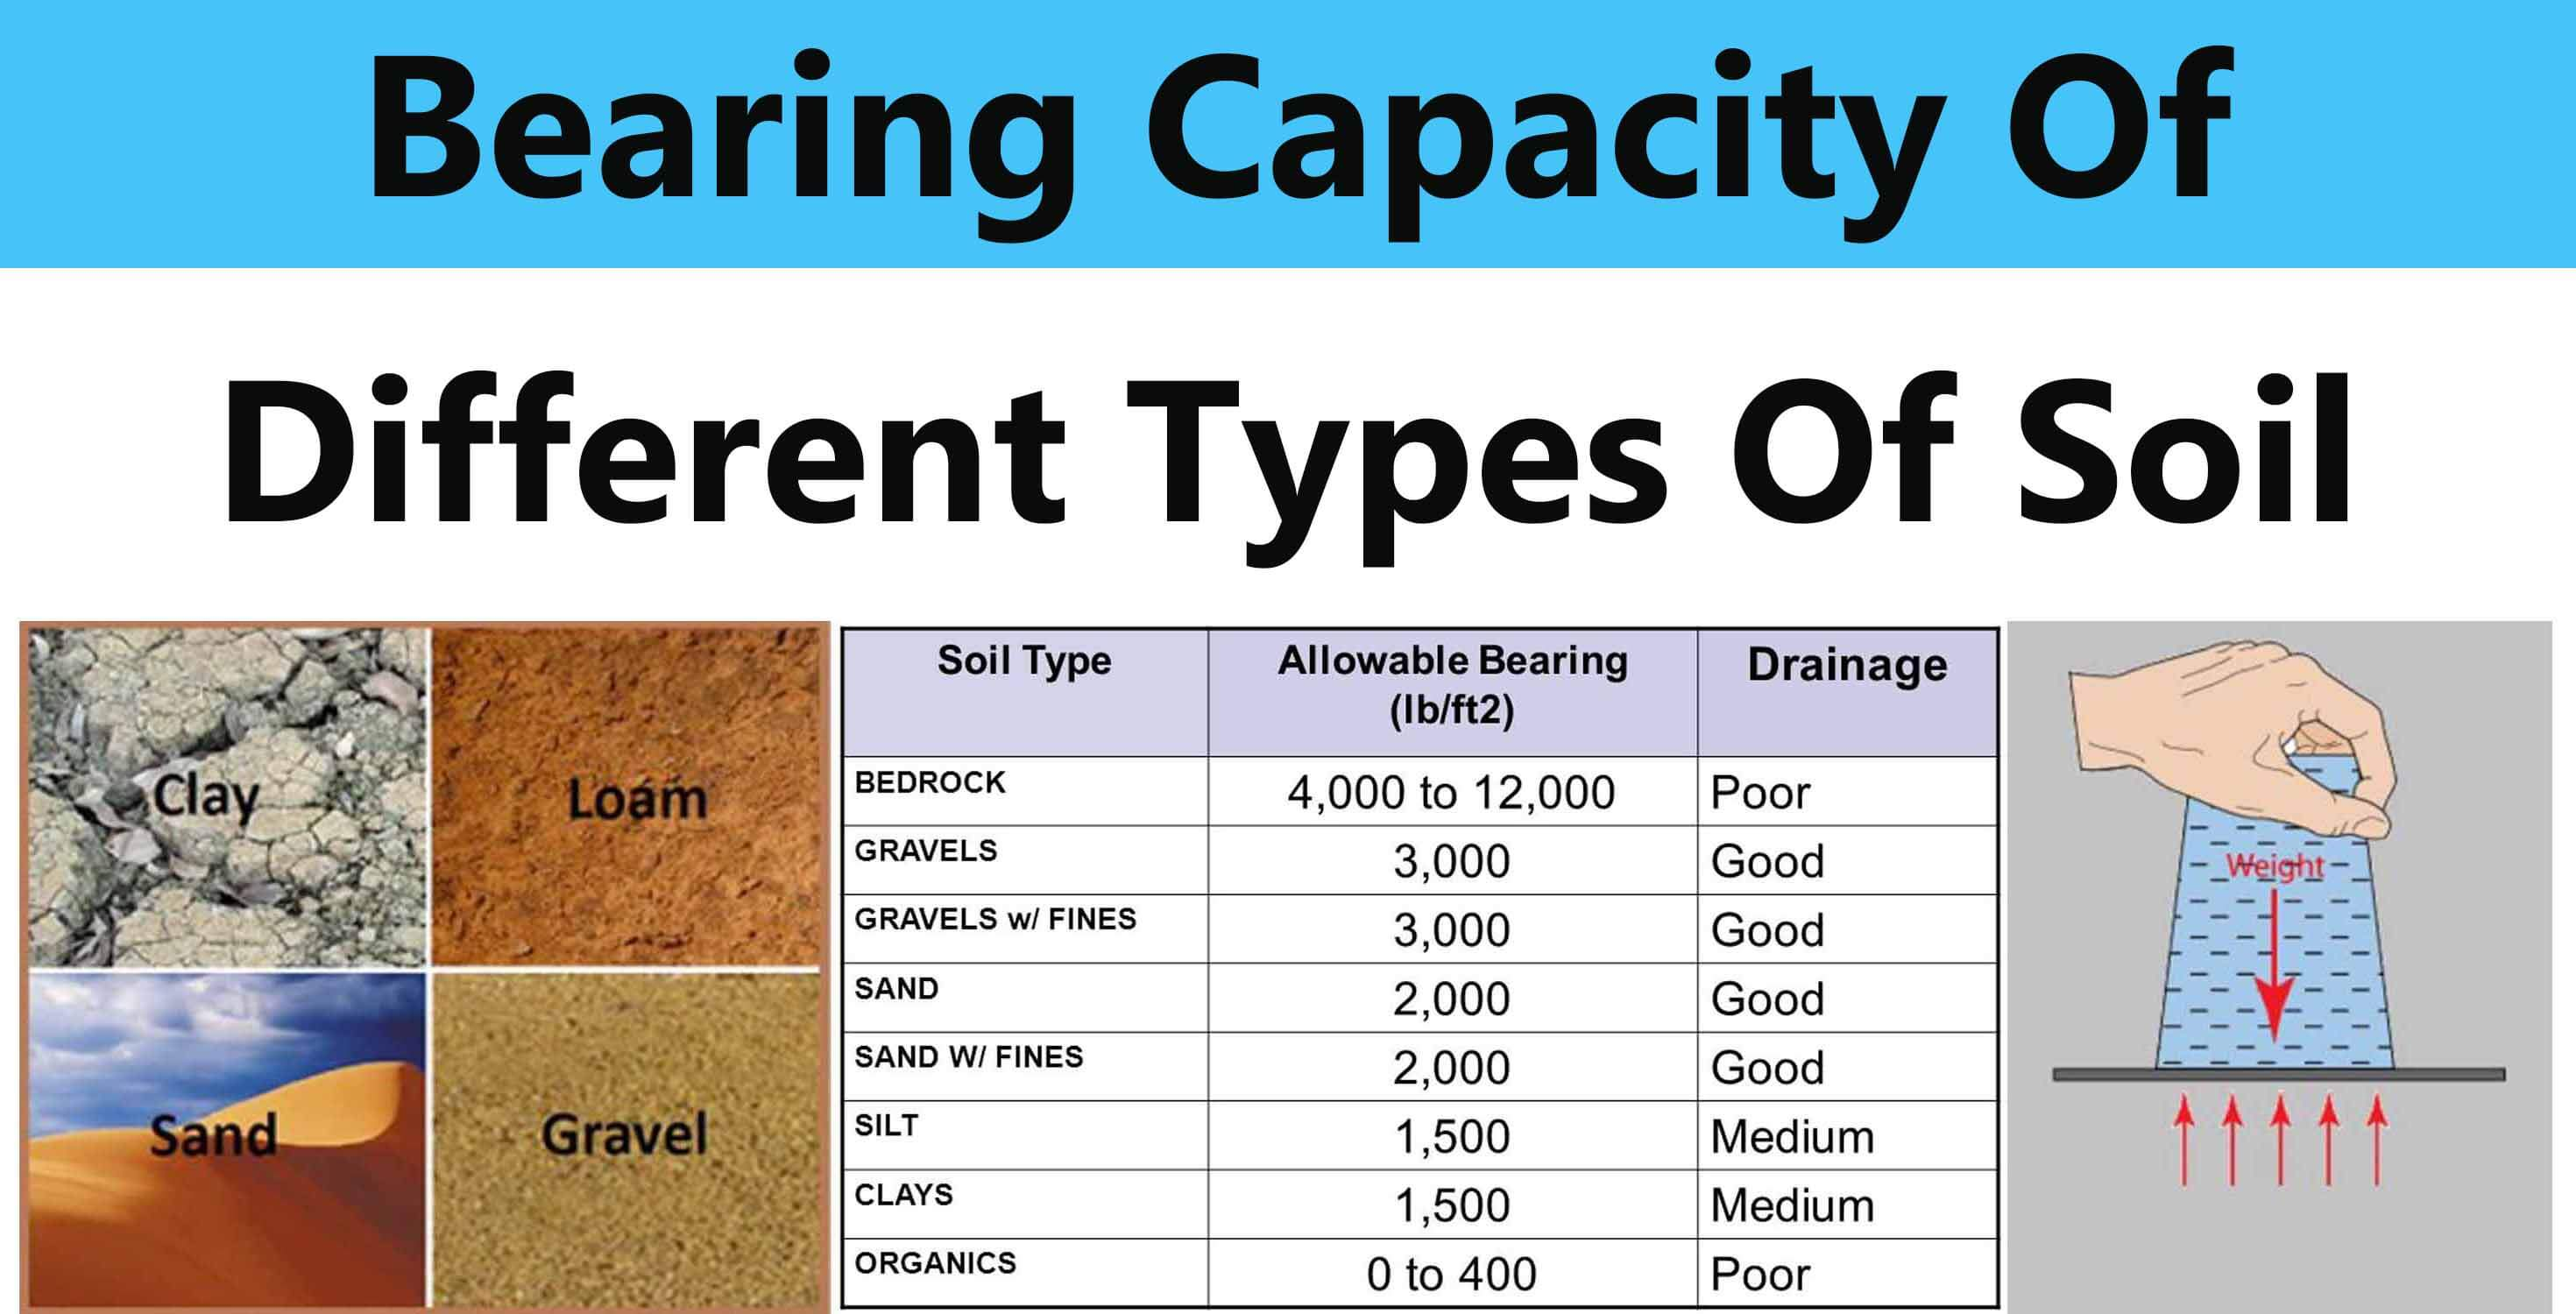 Bearing Capacity Of Different Types Of Soil - Engineering